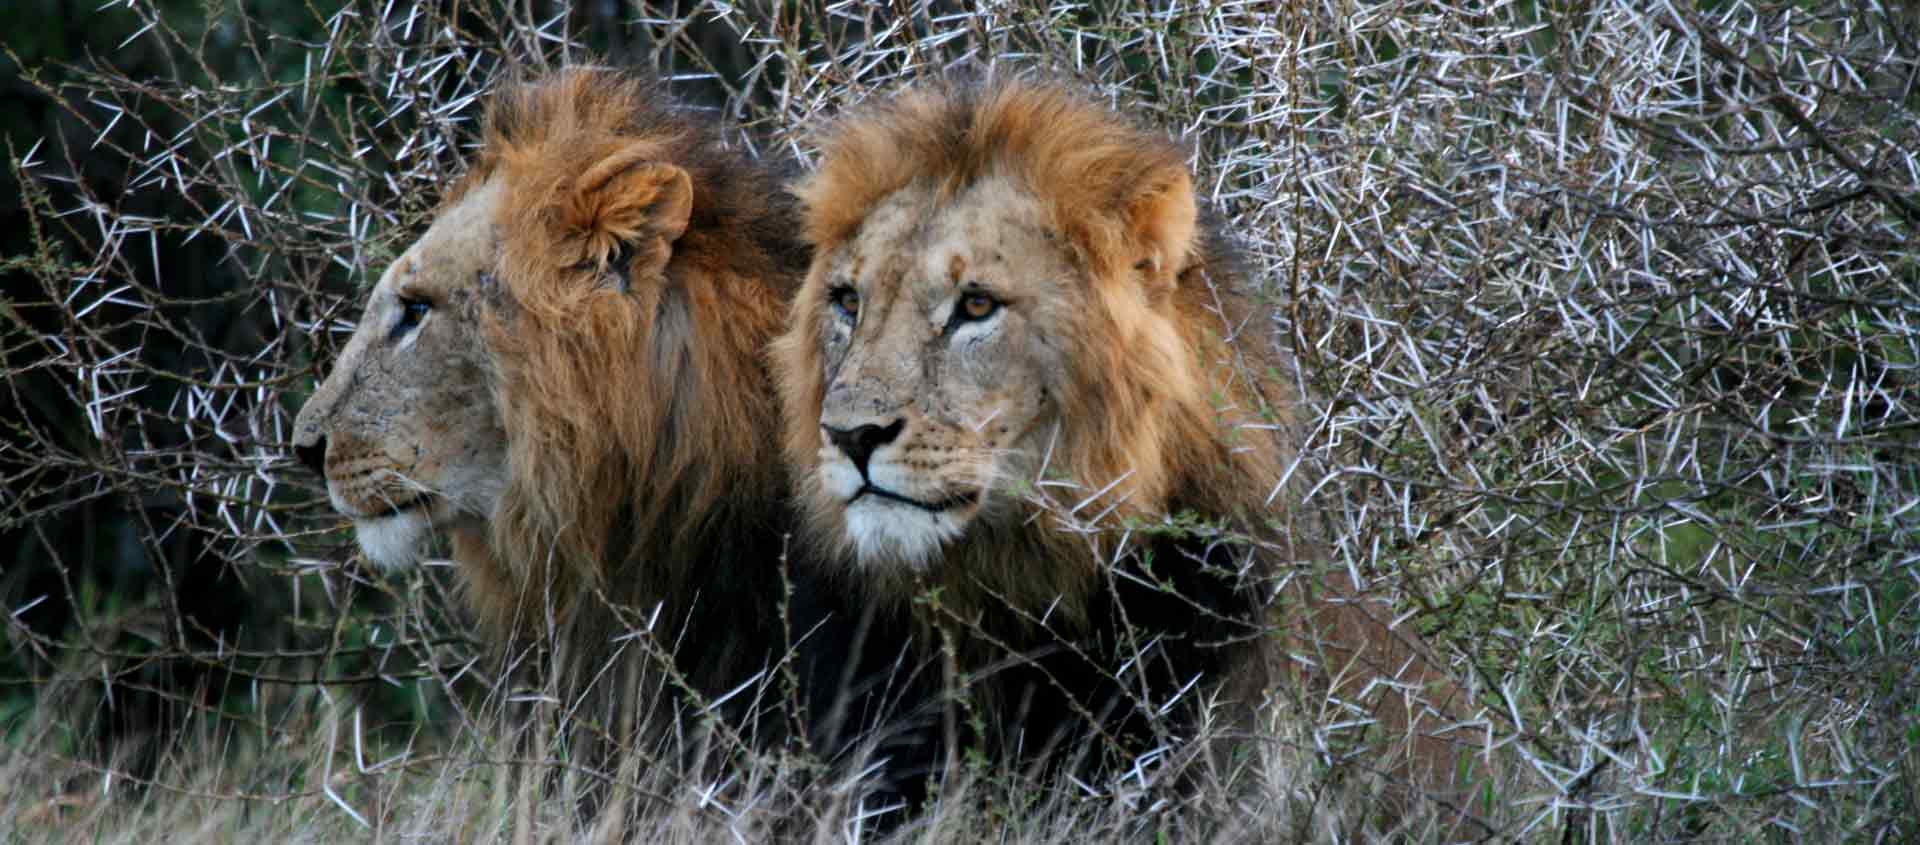 Kenya Private Wildlife Reserve photo of two Lions